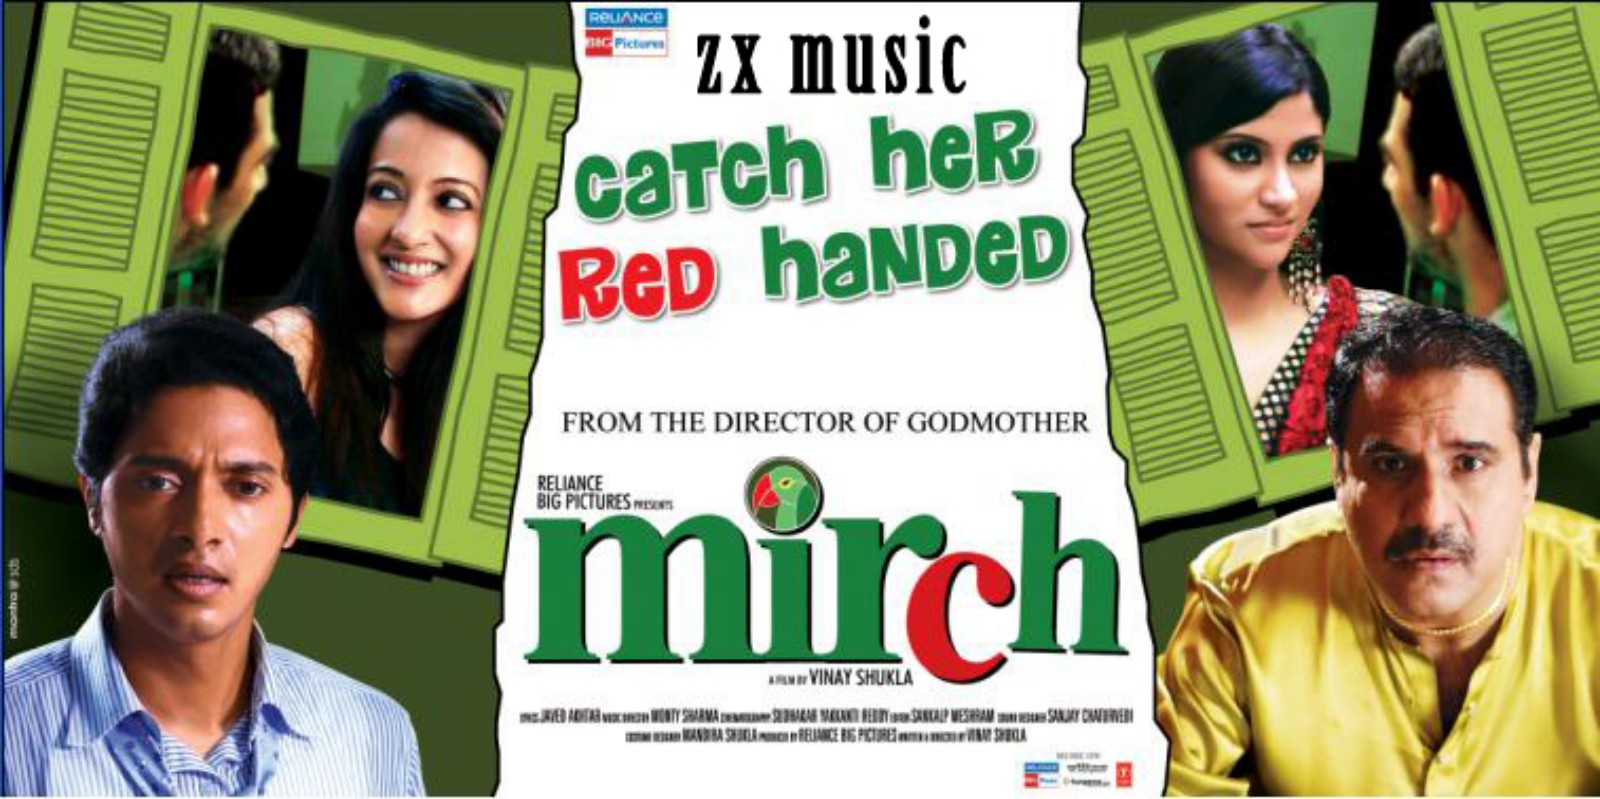 ZX Music: Mirch